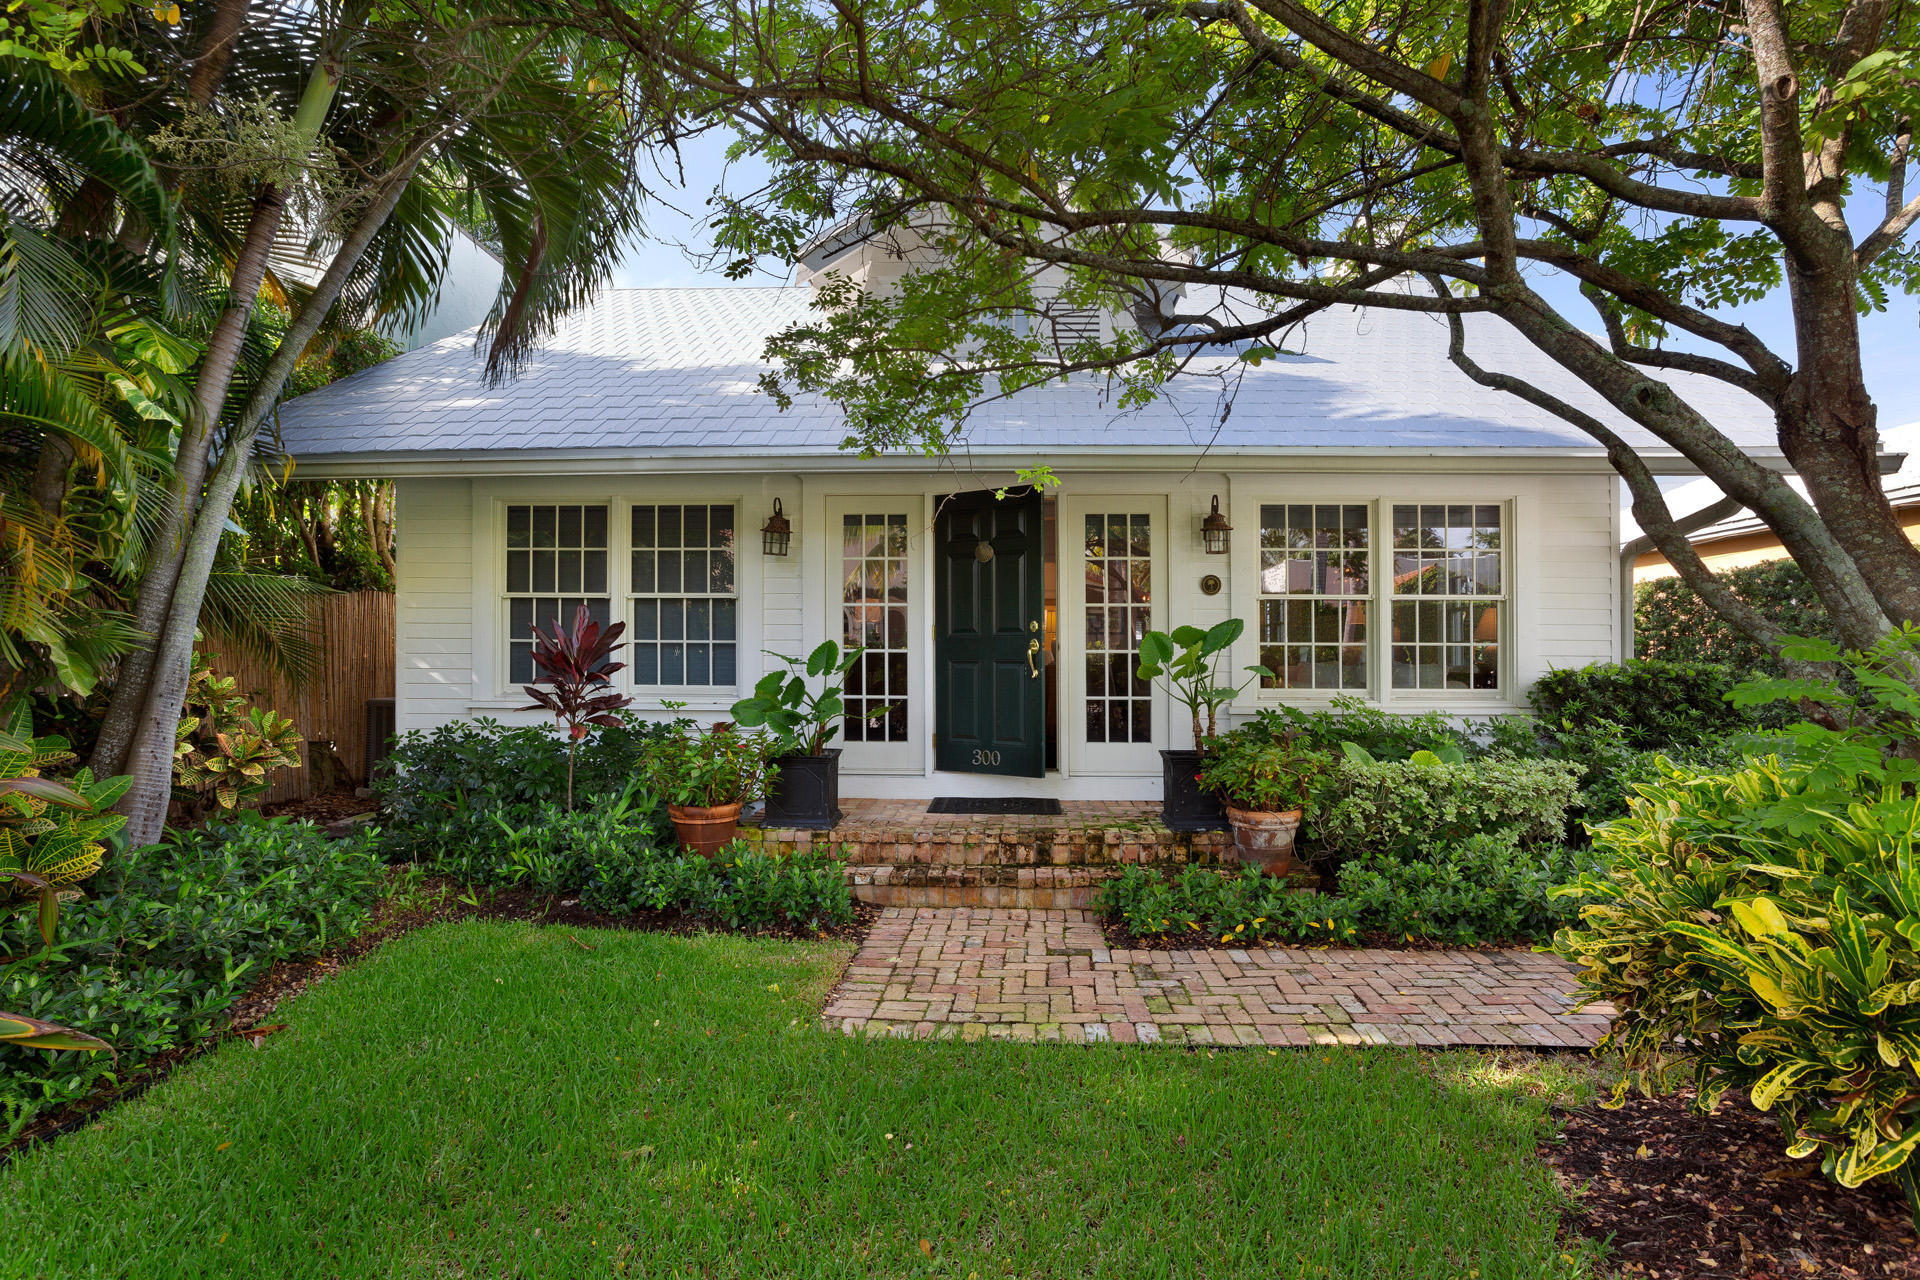 300 Seabreeze Avenue, Palm Beach, Florida 33480, 3 Bedrooms Bedrooms, ,3 BathroomsBathrooms,Single Family,For Rent,Seabreeze,RX-10618712